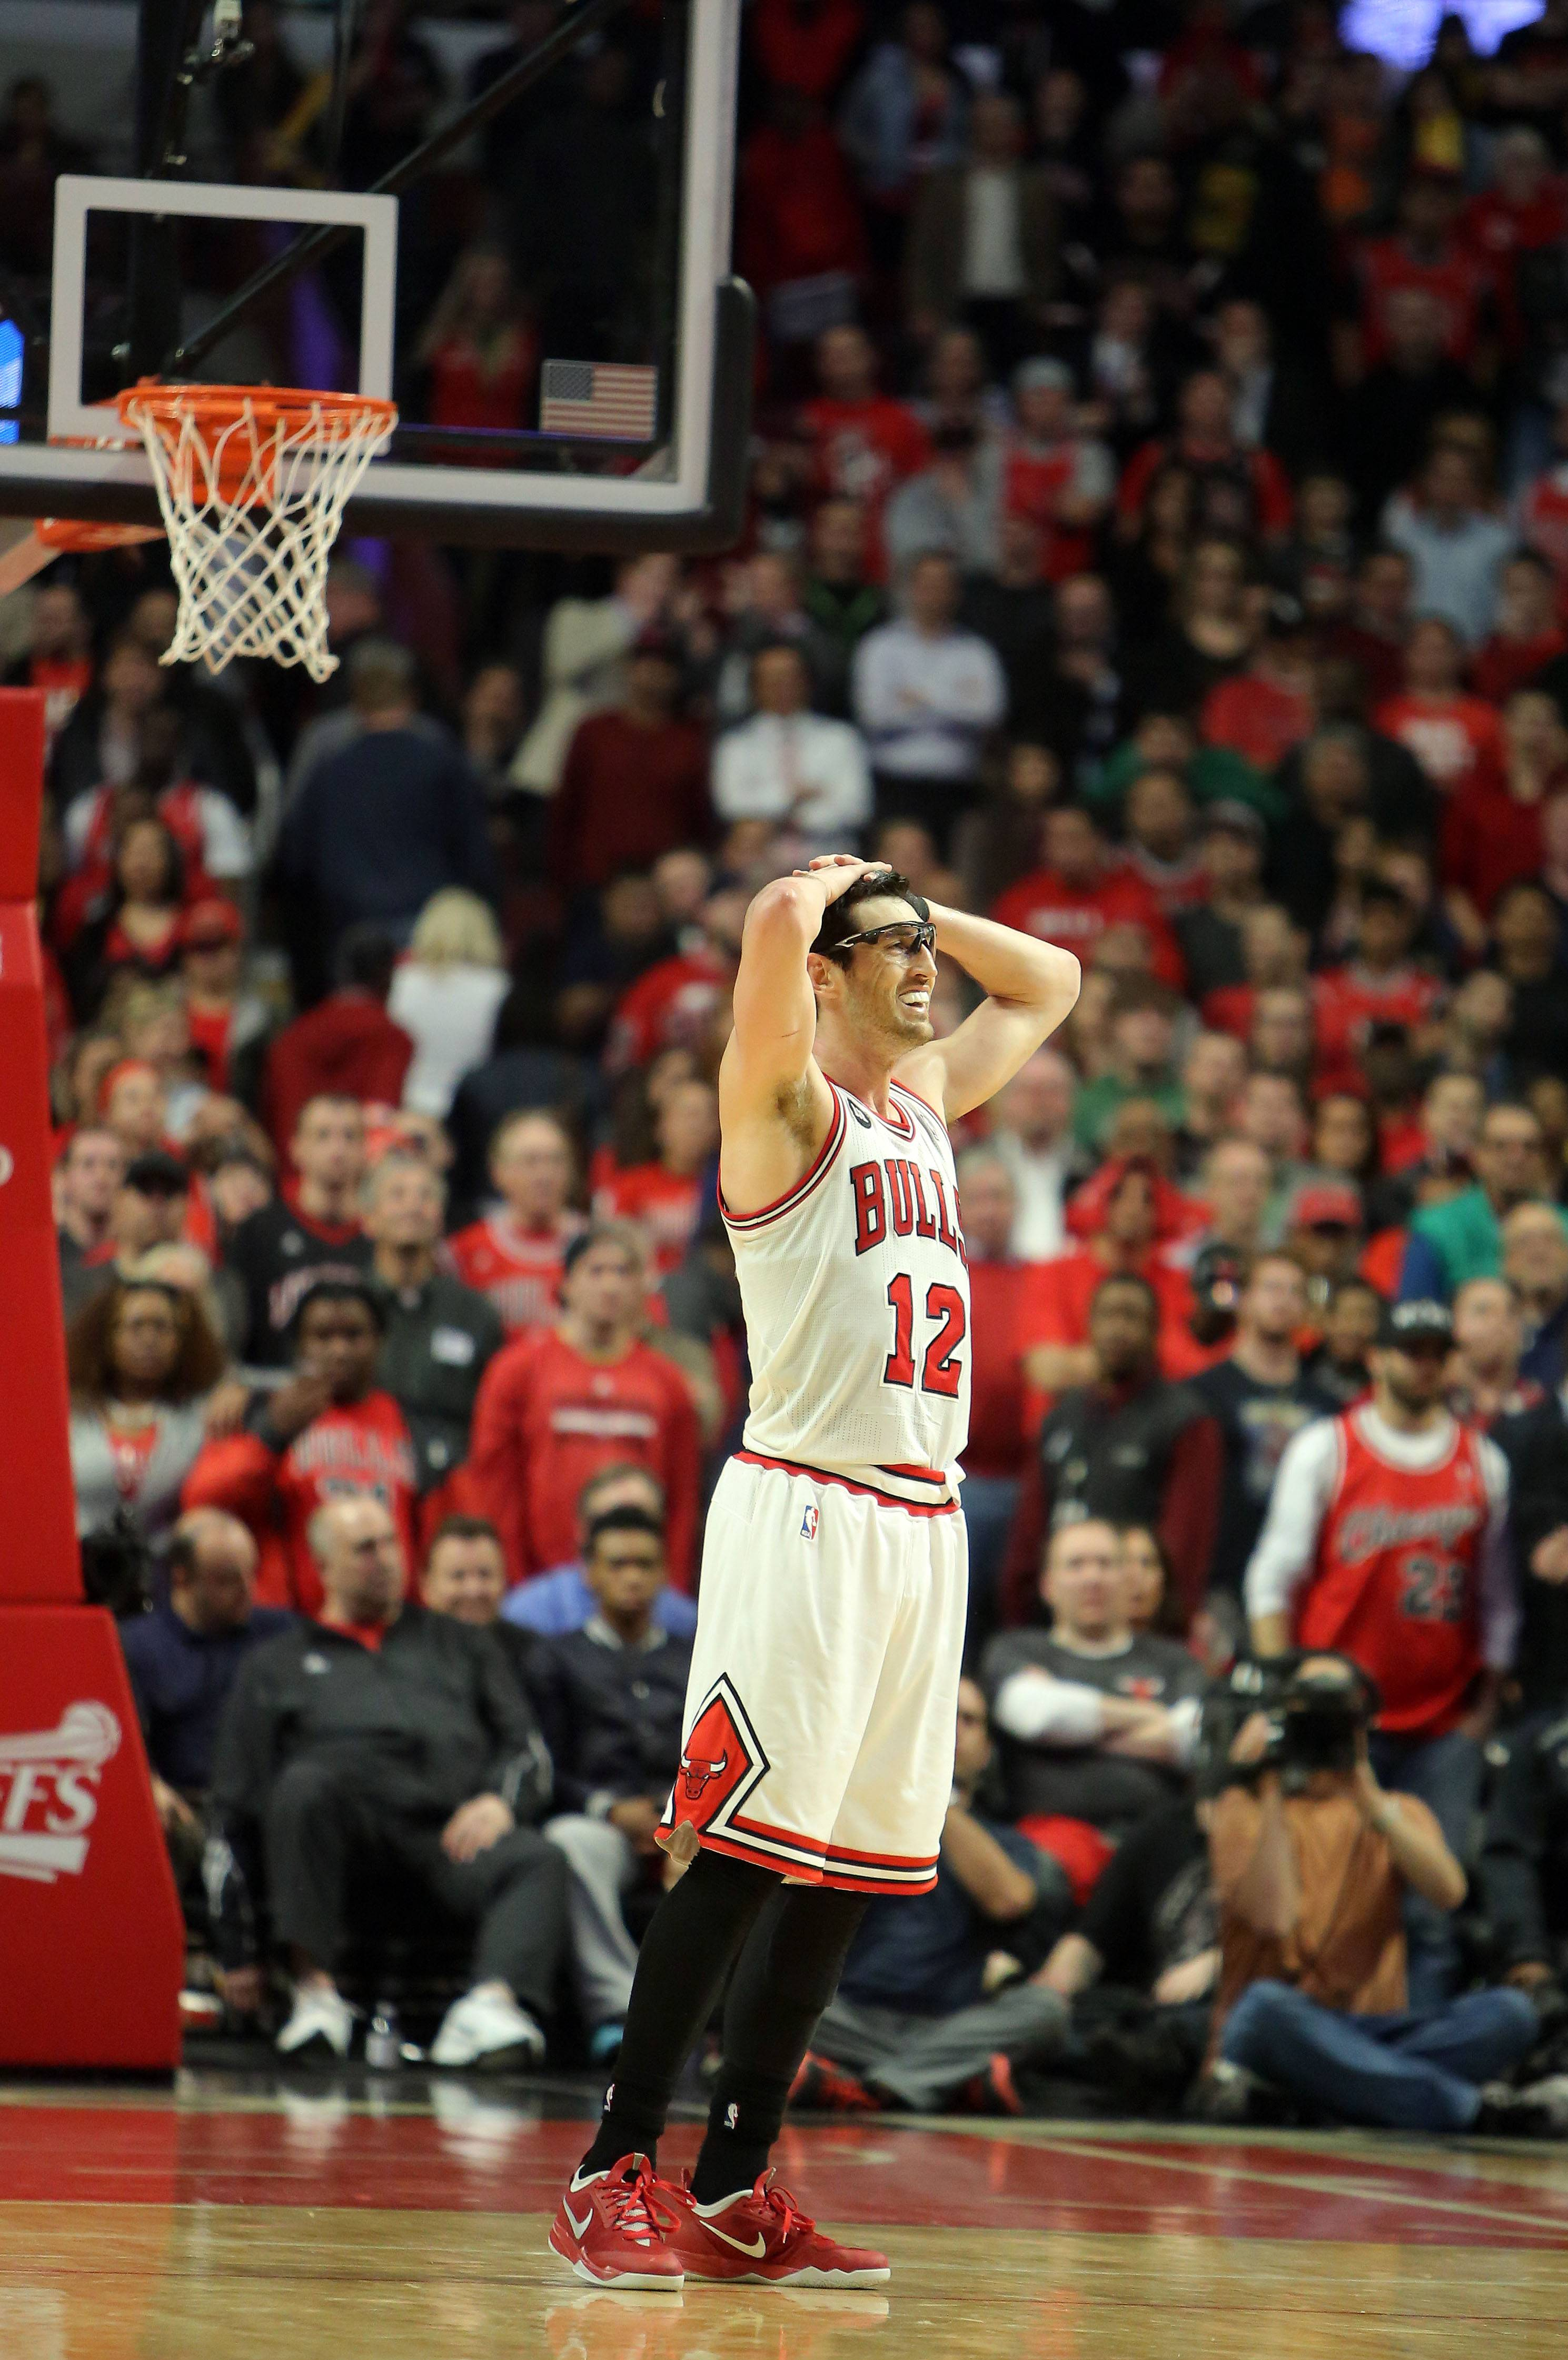 Chicago Bulls guard Kirk Hinrich fouls out.